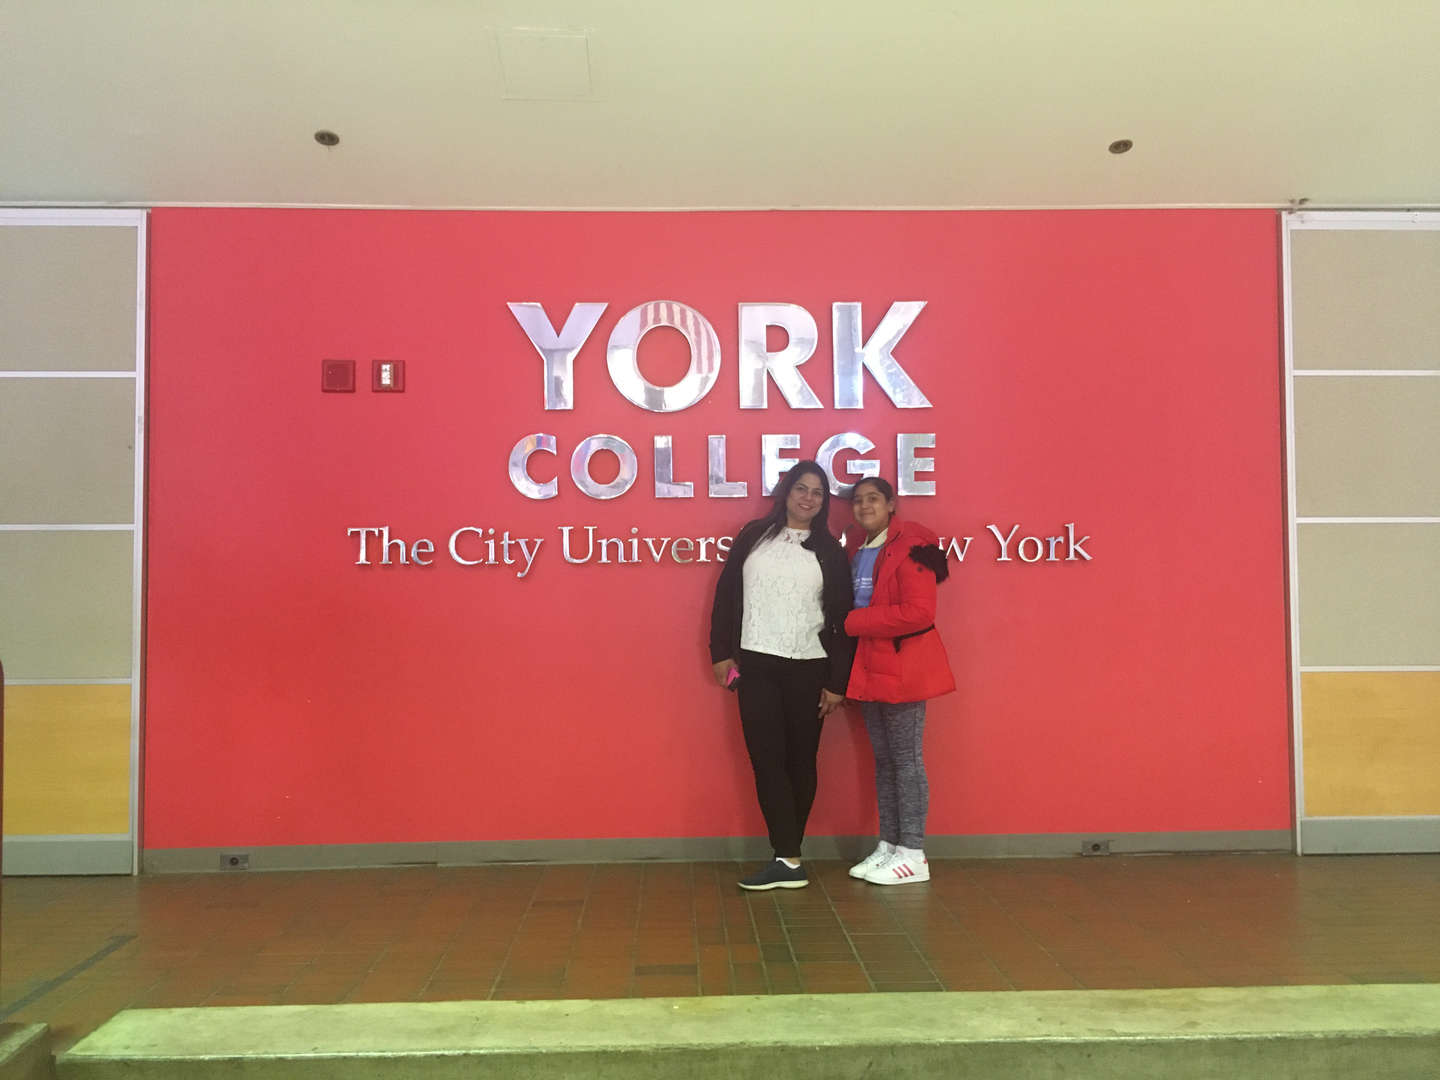 Two students in front of the York College sign